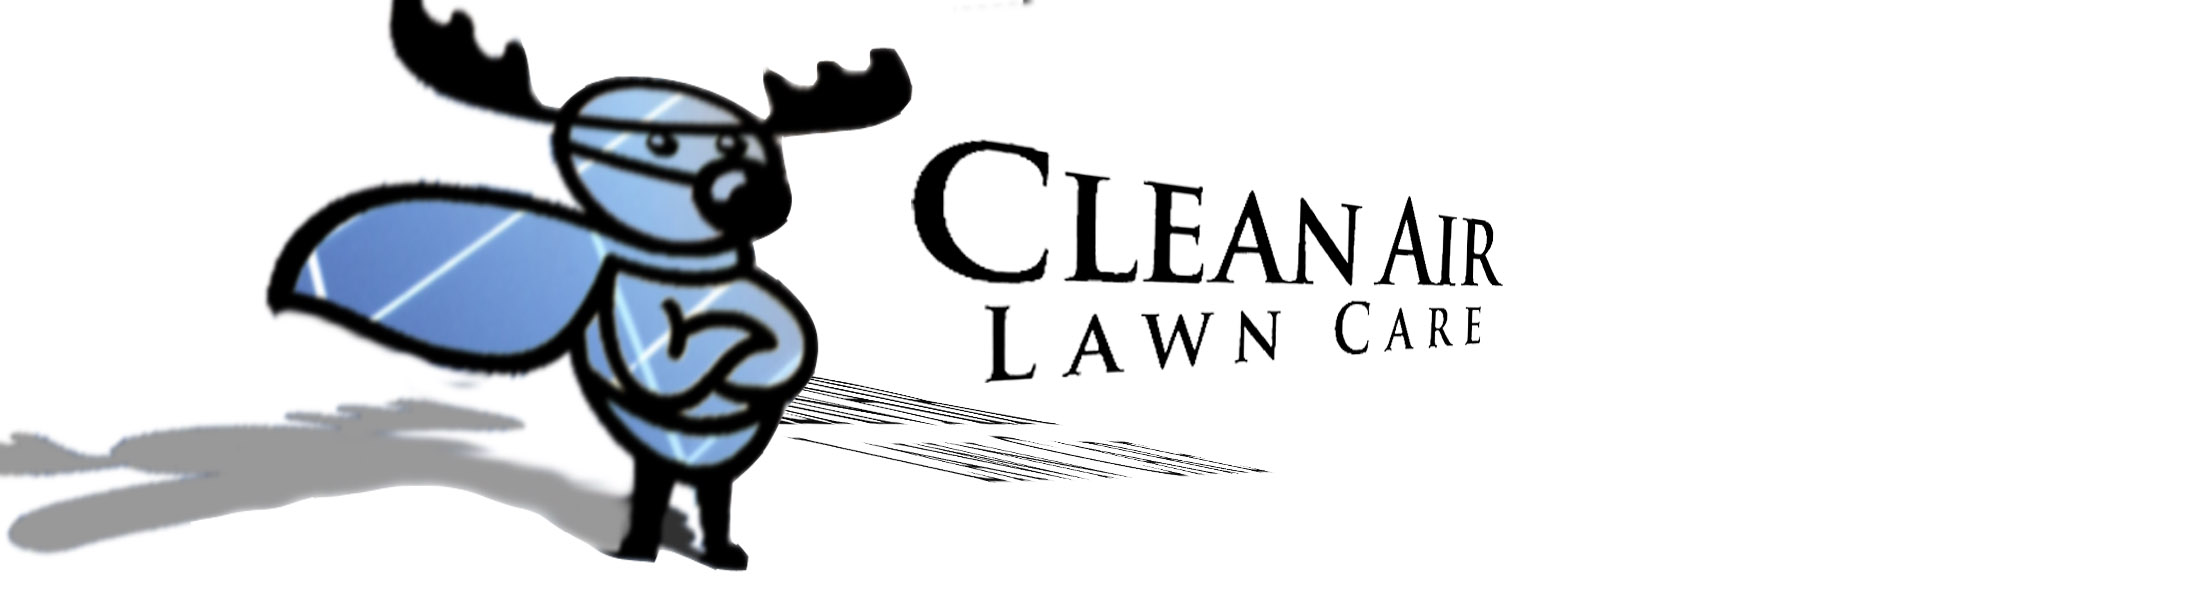 how to start up a lawn care business